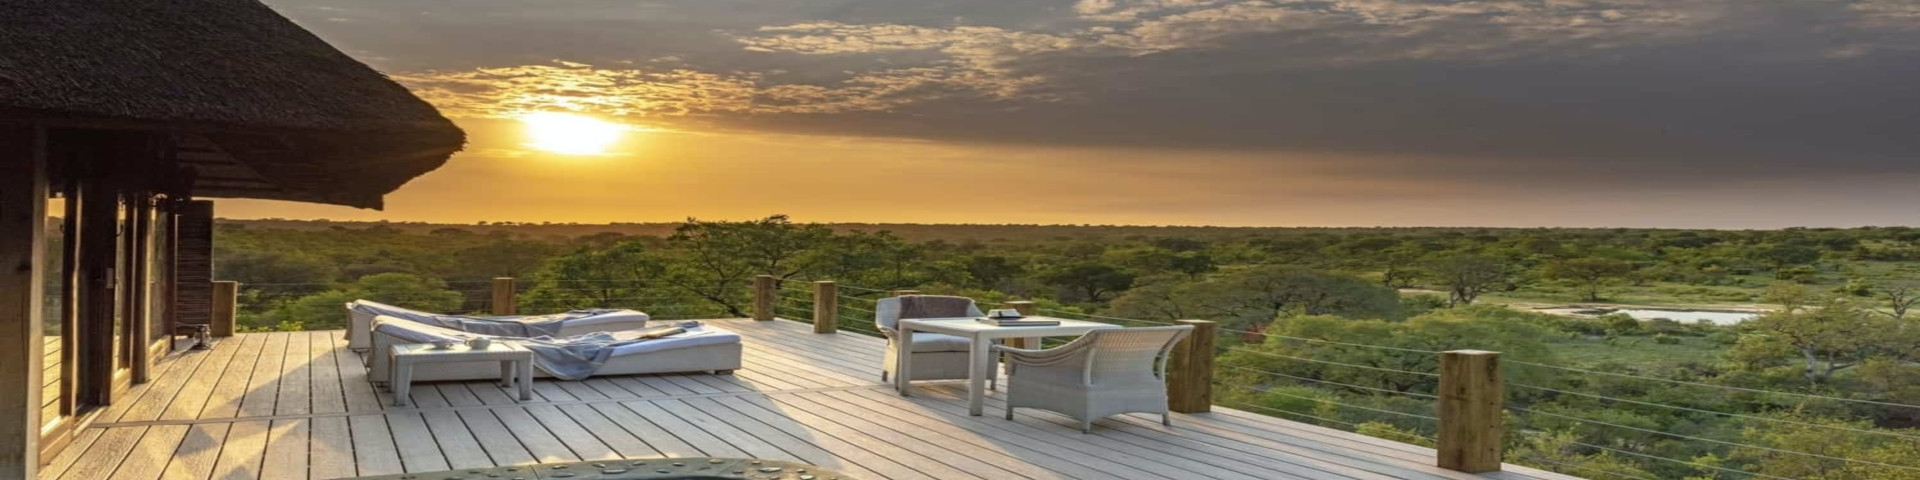 Banner Accommodation - South Africa - Sabi Sand - Leopard Hills Private Game Lodge